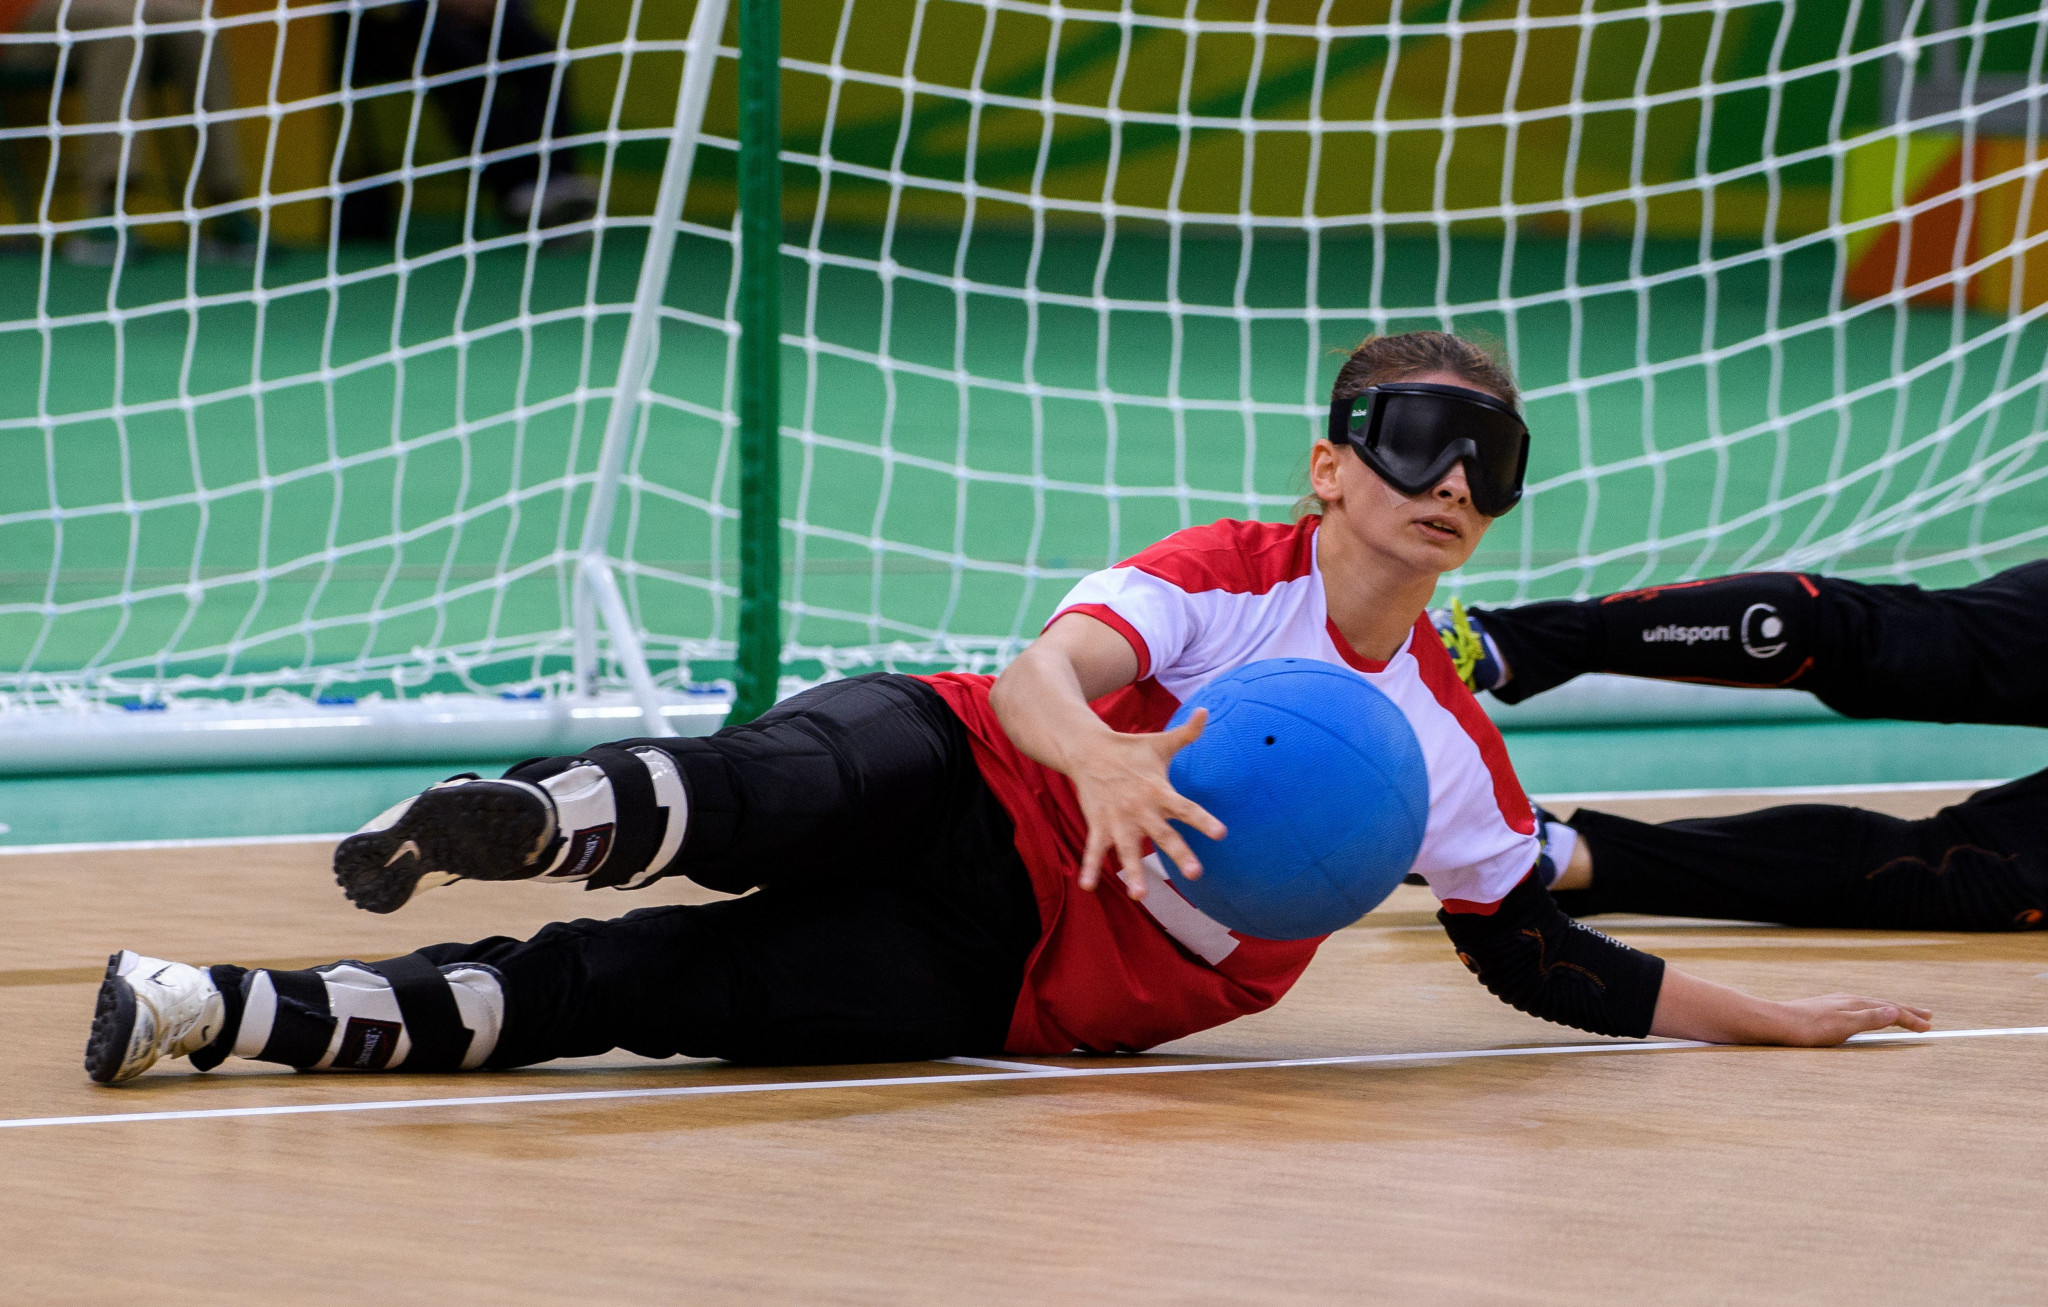 Qualification events for the Tokyo 2020 goalball tournament had already been held before the postponement ©Getty Images